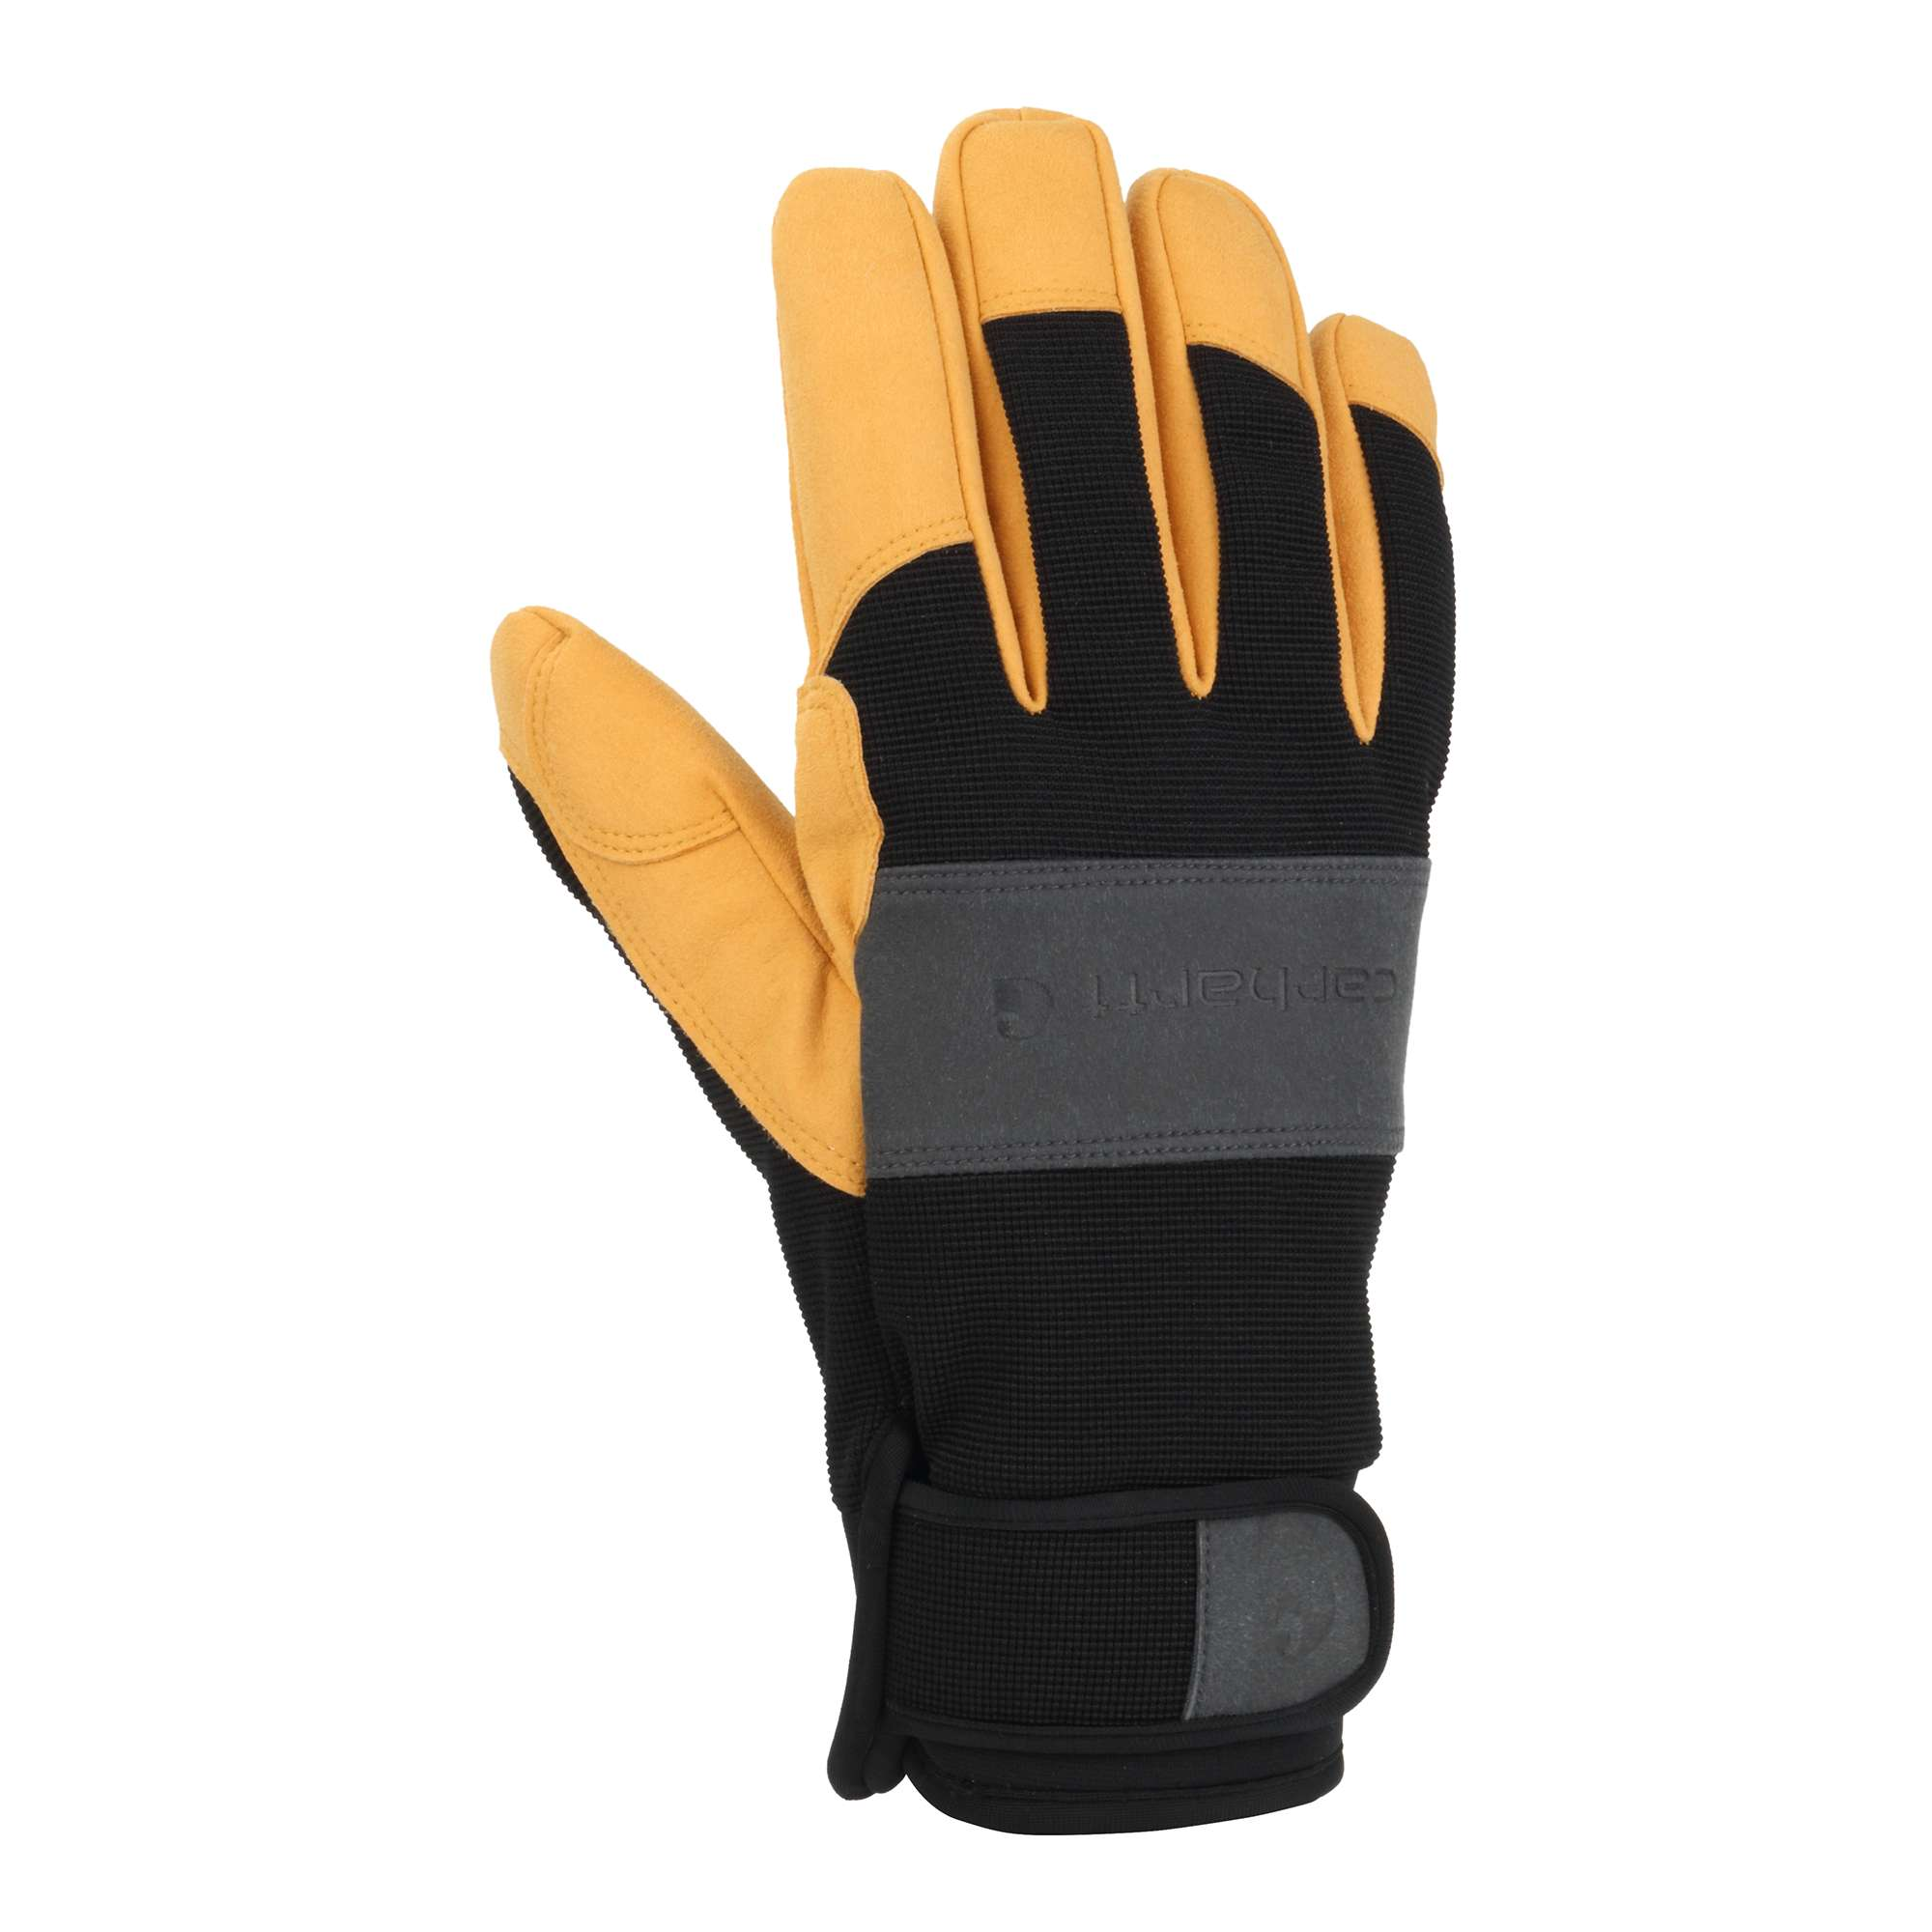 Carhartt Waterproof Breathable High Dexterity Glove